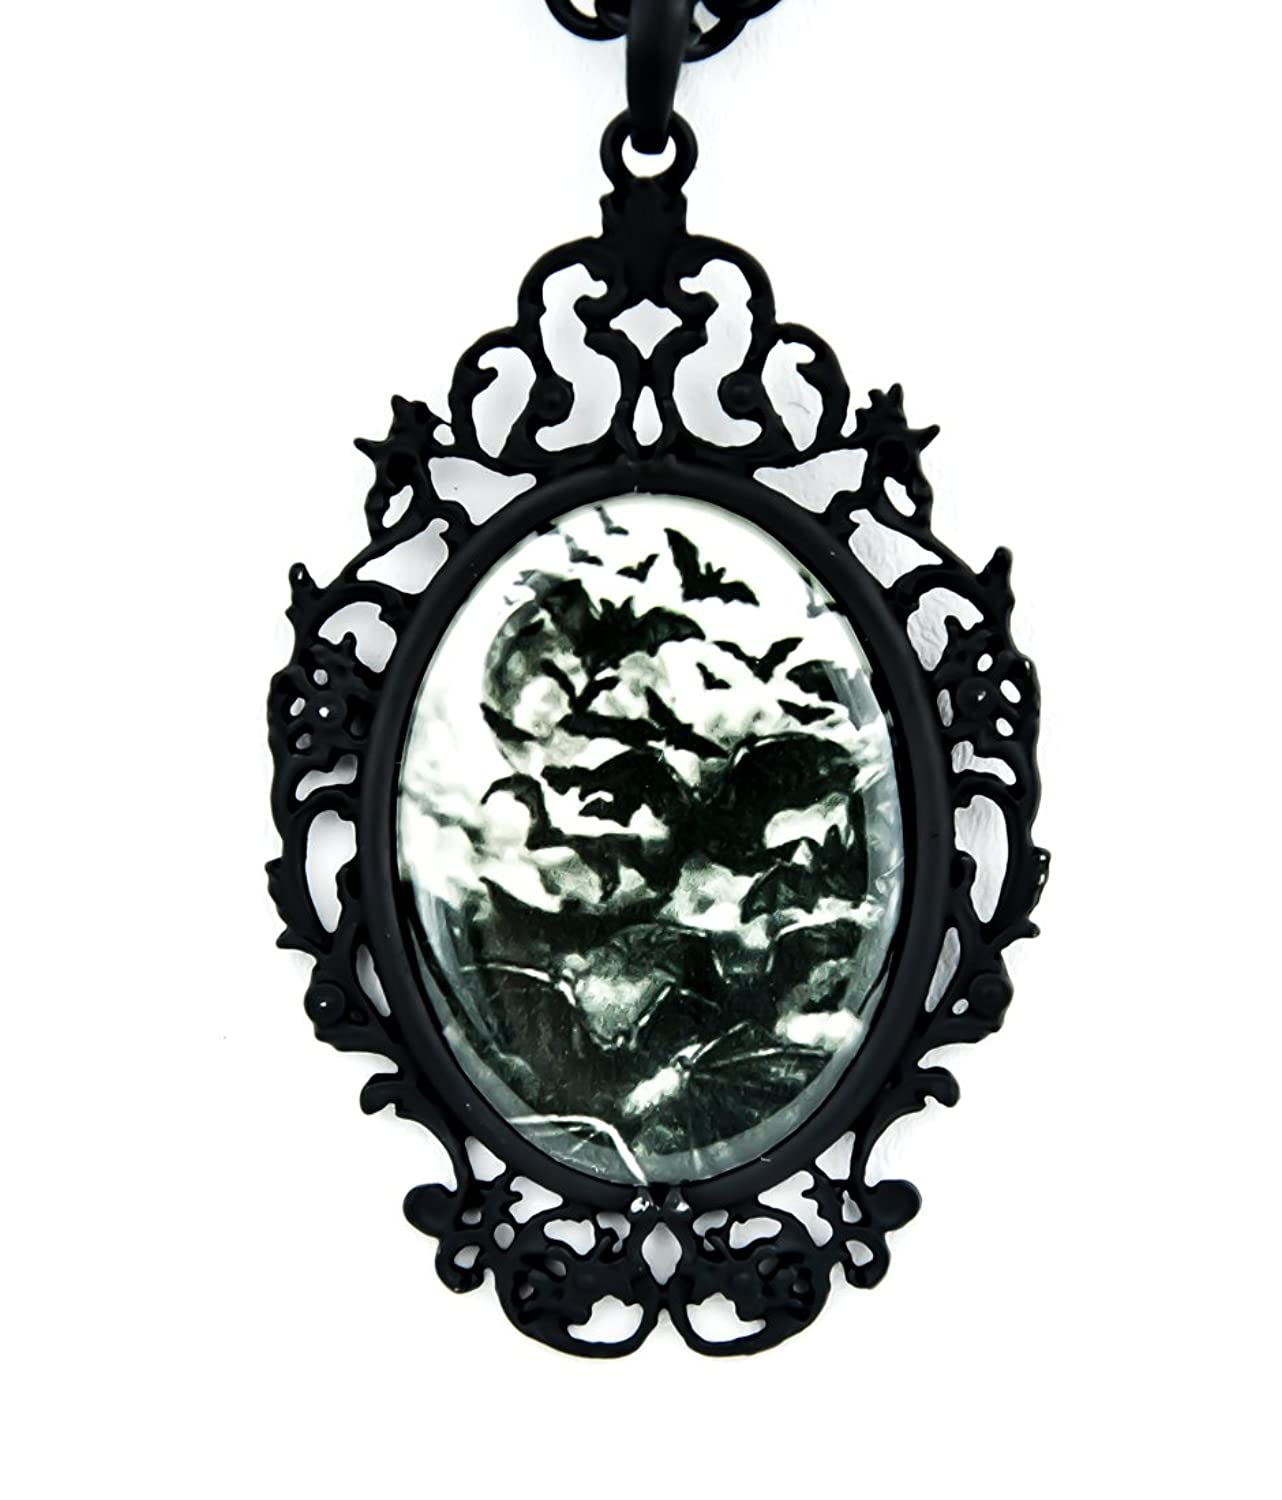 Vampire Bats Swarm Necklace Under a Full Moon Gothic Jewelry